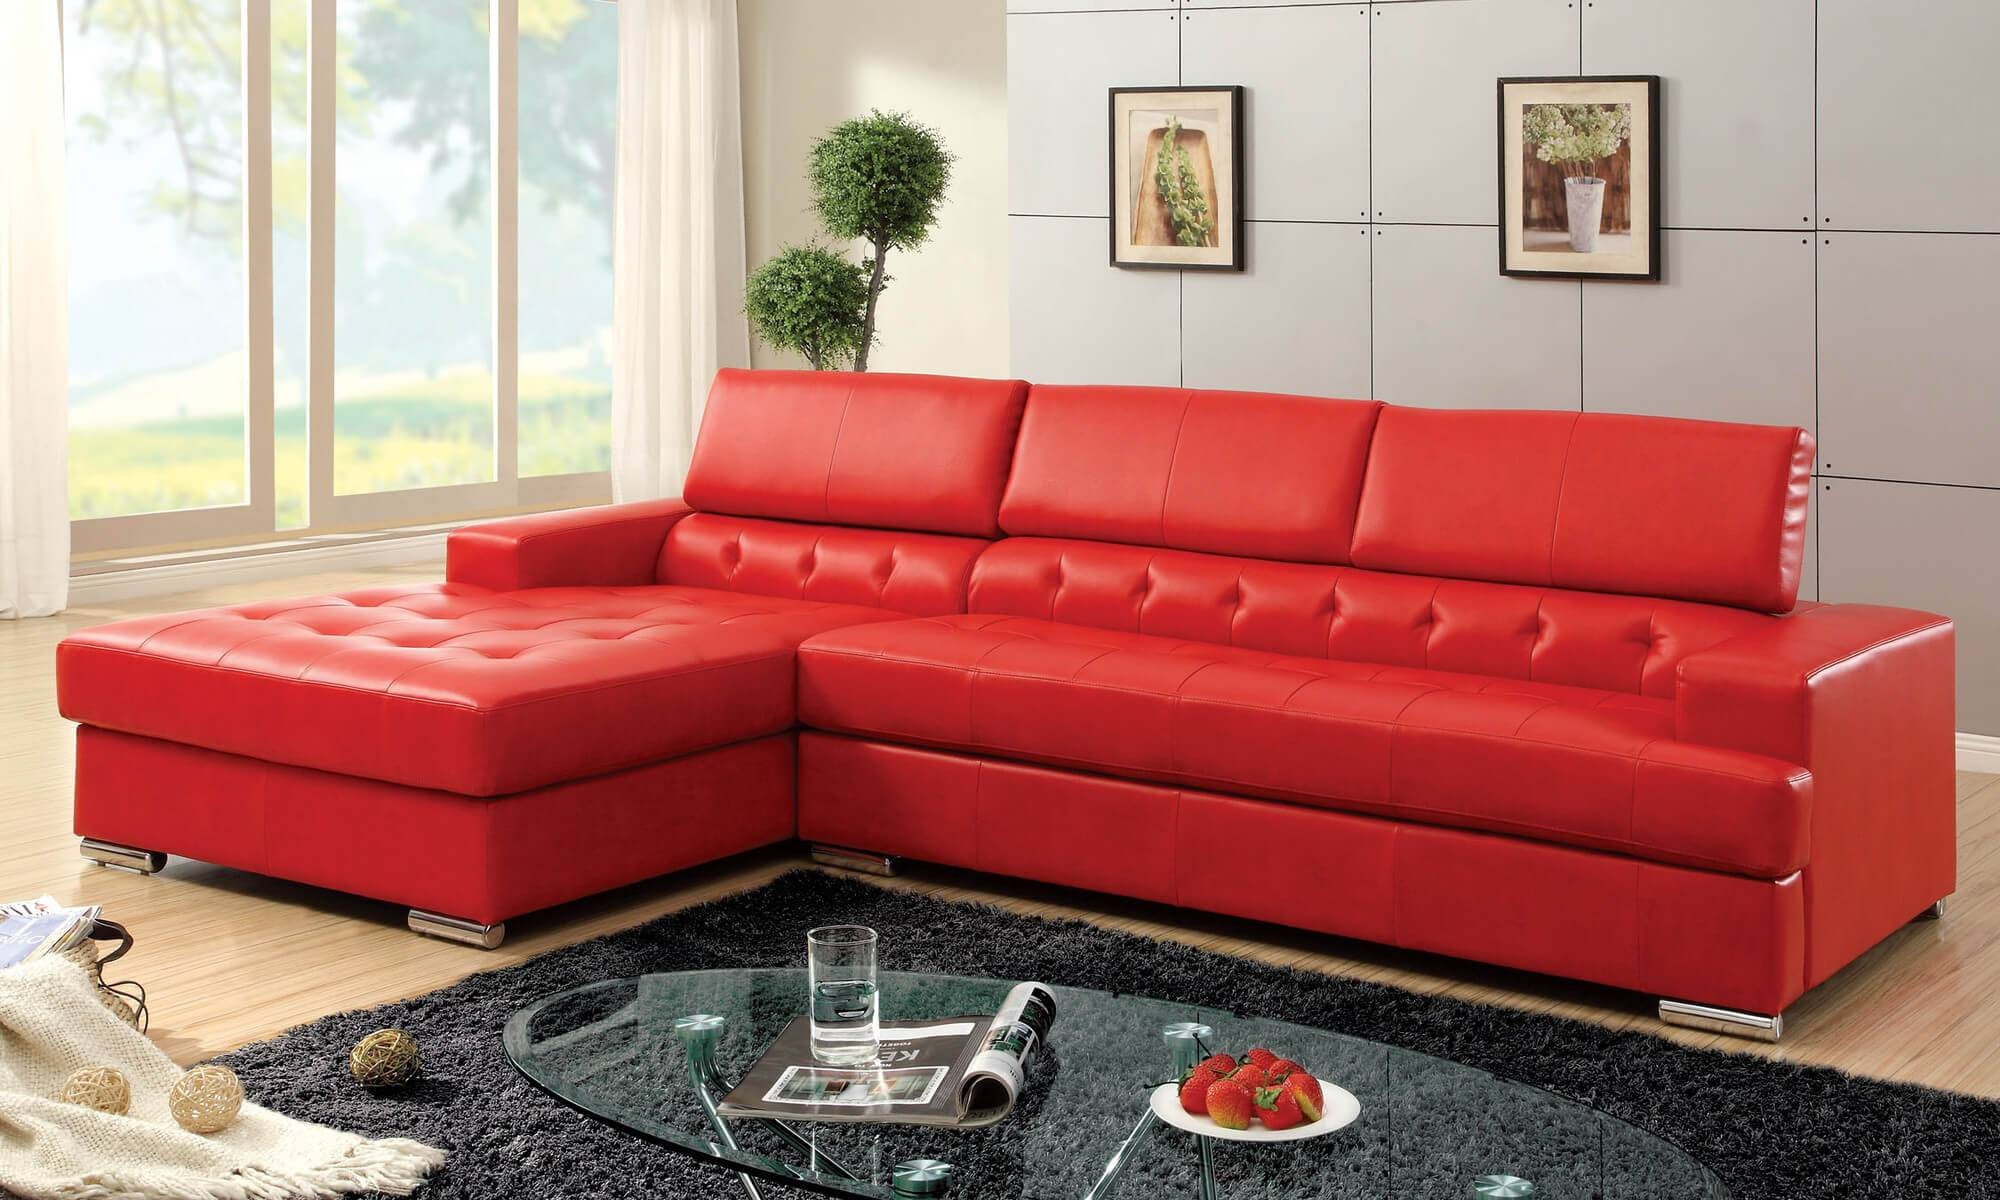 Beautiful Modern Red Leather Couch 19 In House Interiors With throughout Dark Red Leather Sofas (Image 1 of 15)